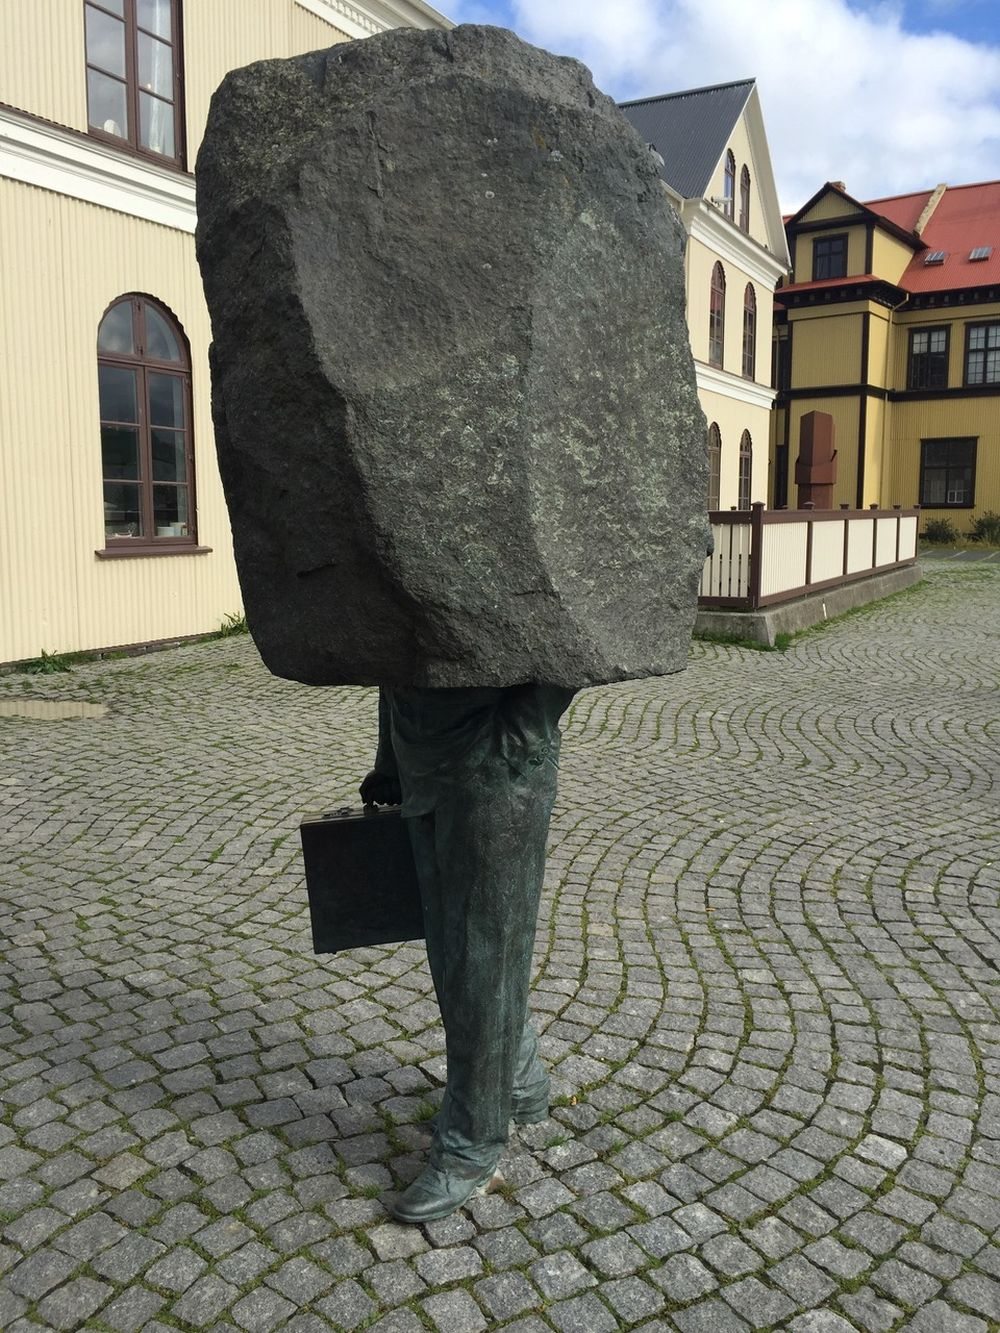 Sculpture in Iceland